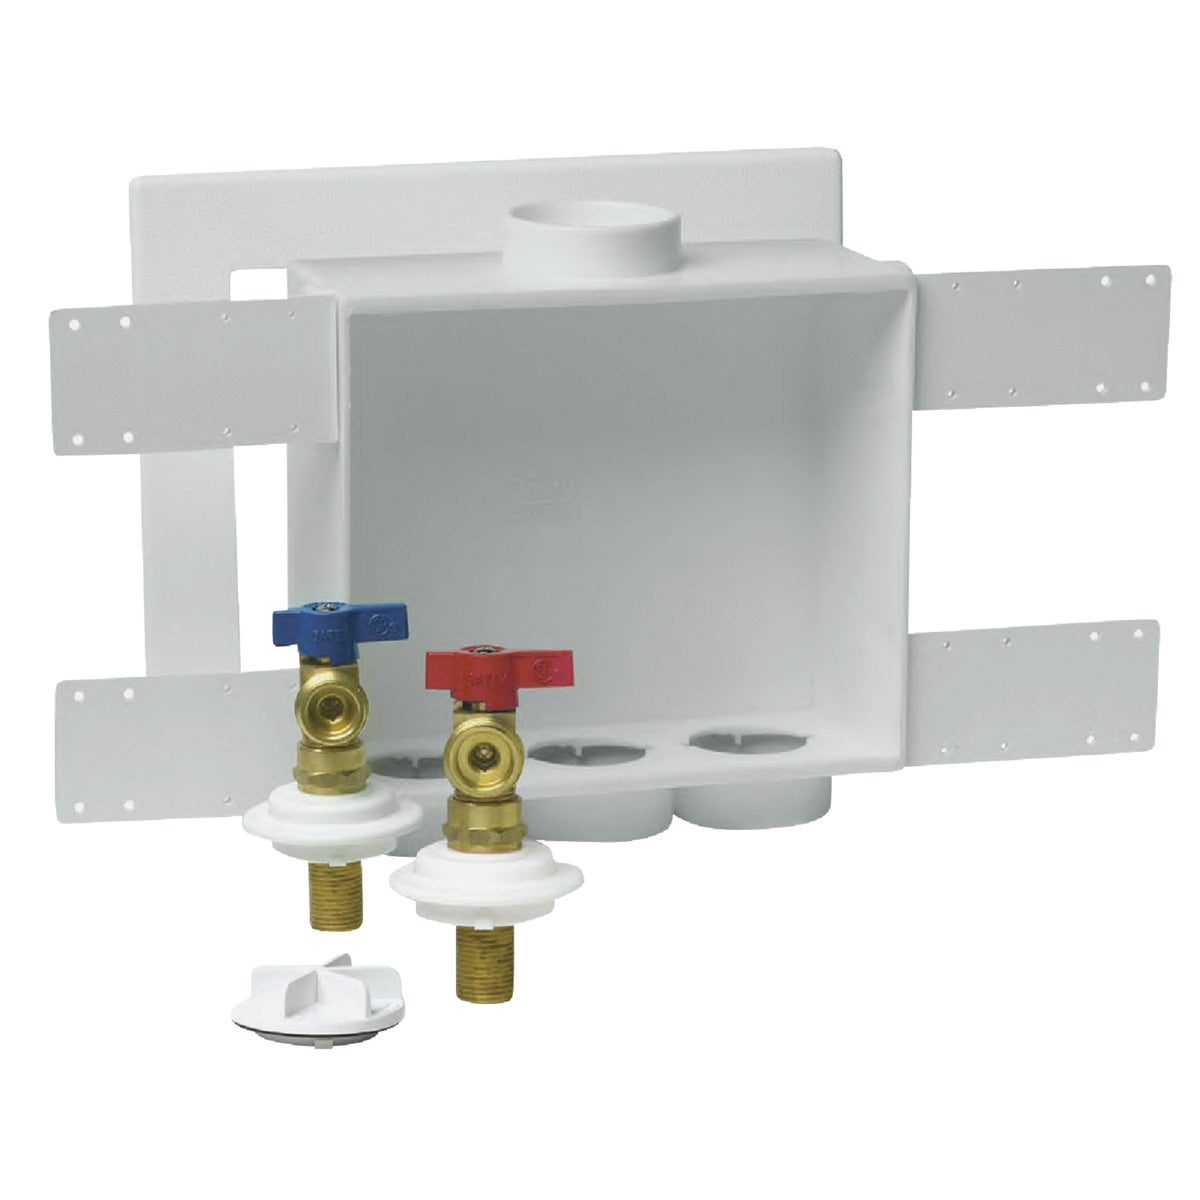 WASH MACHINE OUTLET BOX - 38529 by Oatey Scs